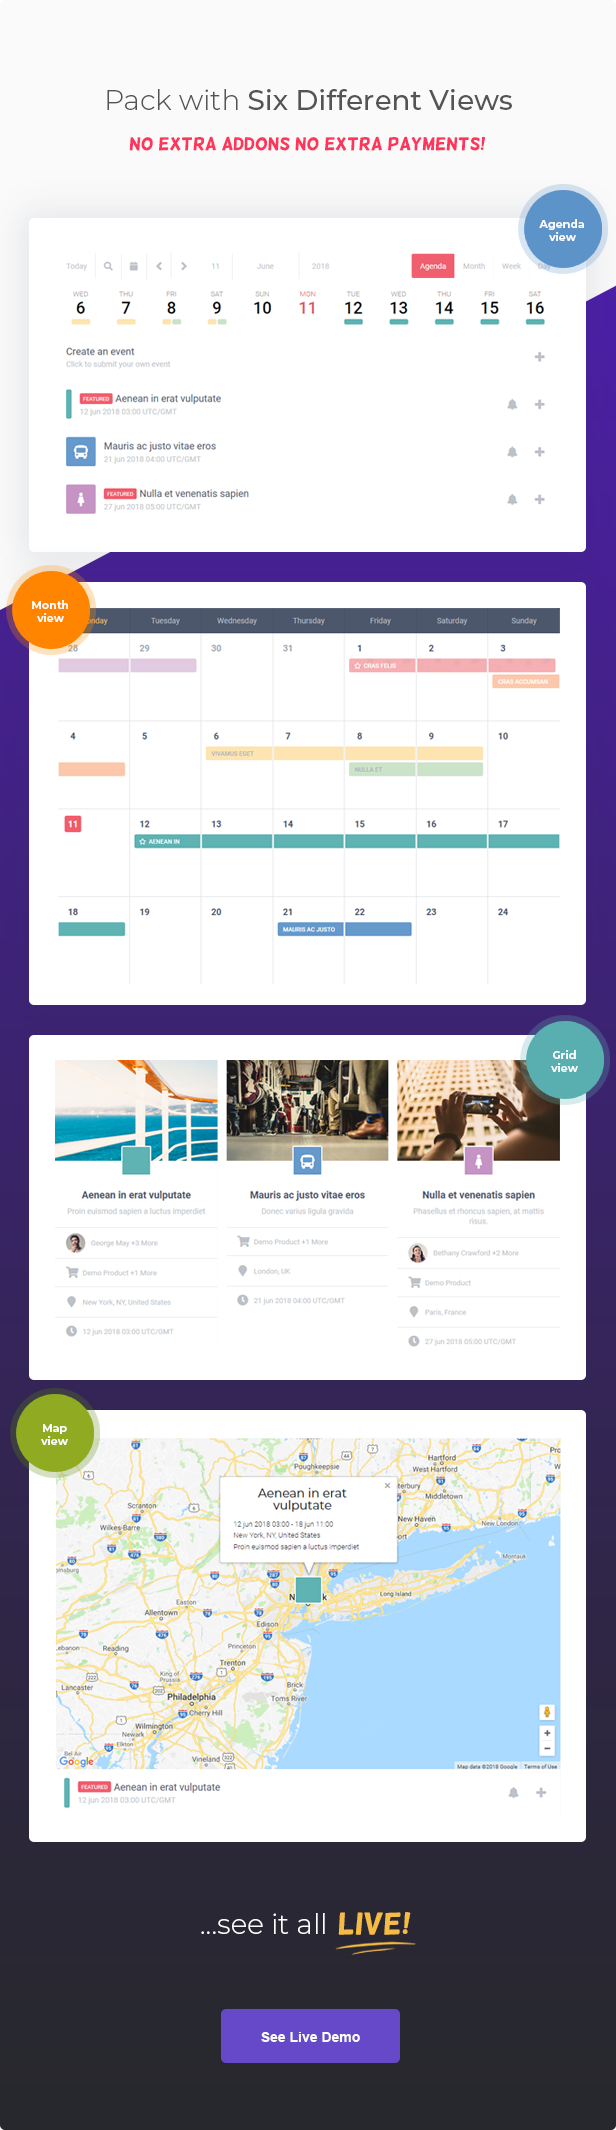 content2ee - Stachethemes Event Calendar – WordPress Events Calendar Plugin